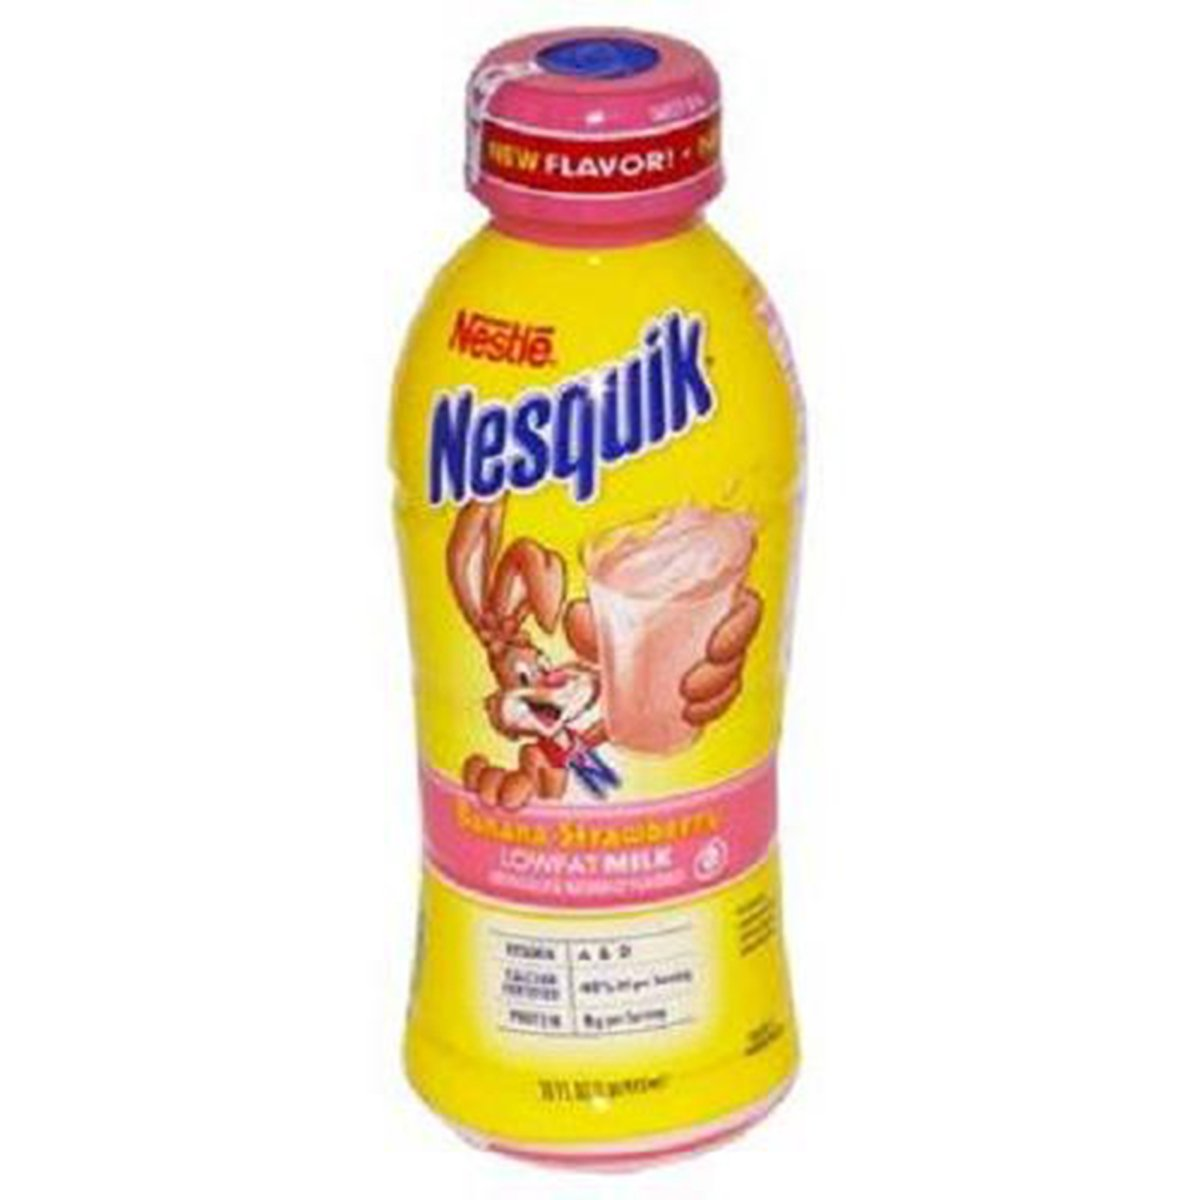 Product Of Nesquik, Low Fat Milk - Banana Strawberry, Count 12 (14 oz) - Milk/Yogurt/Smoothie / Grab Varieties & Flavors